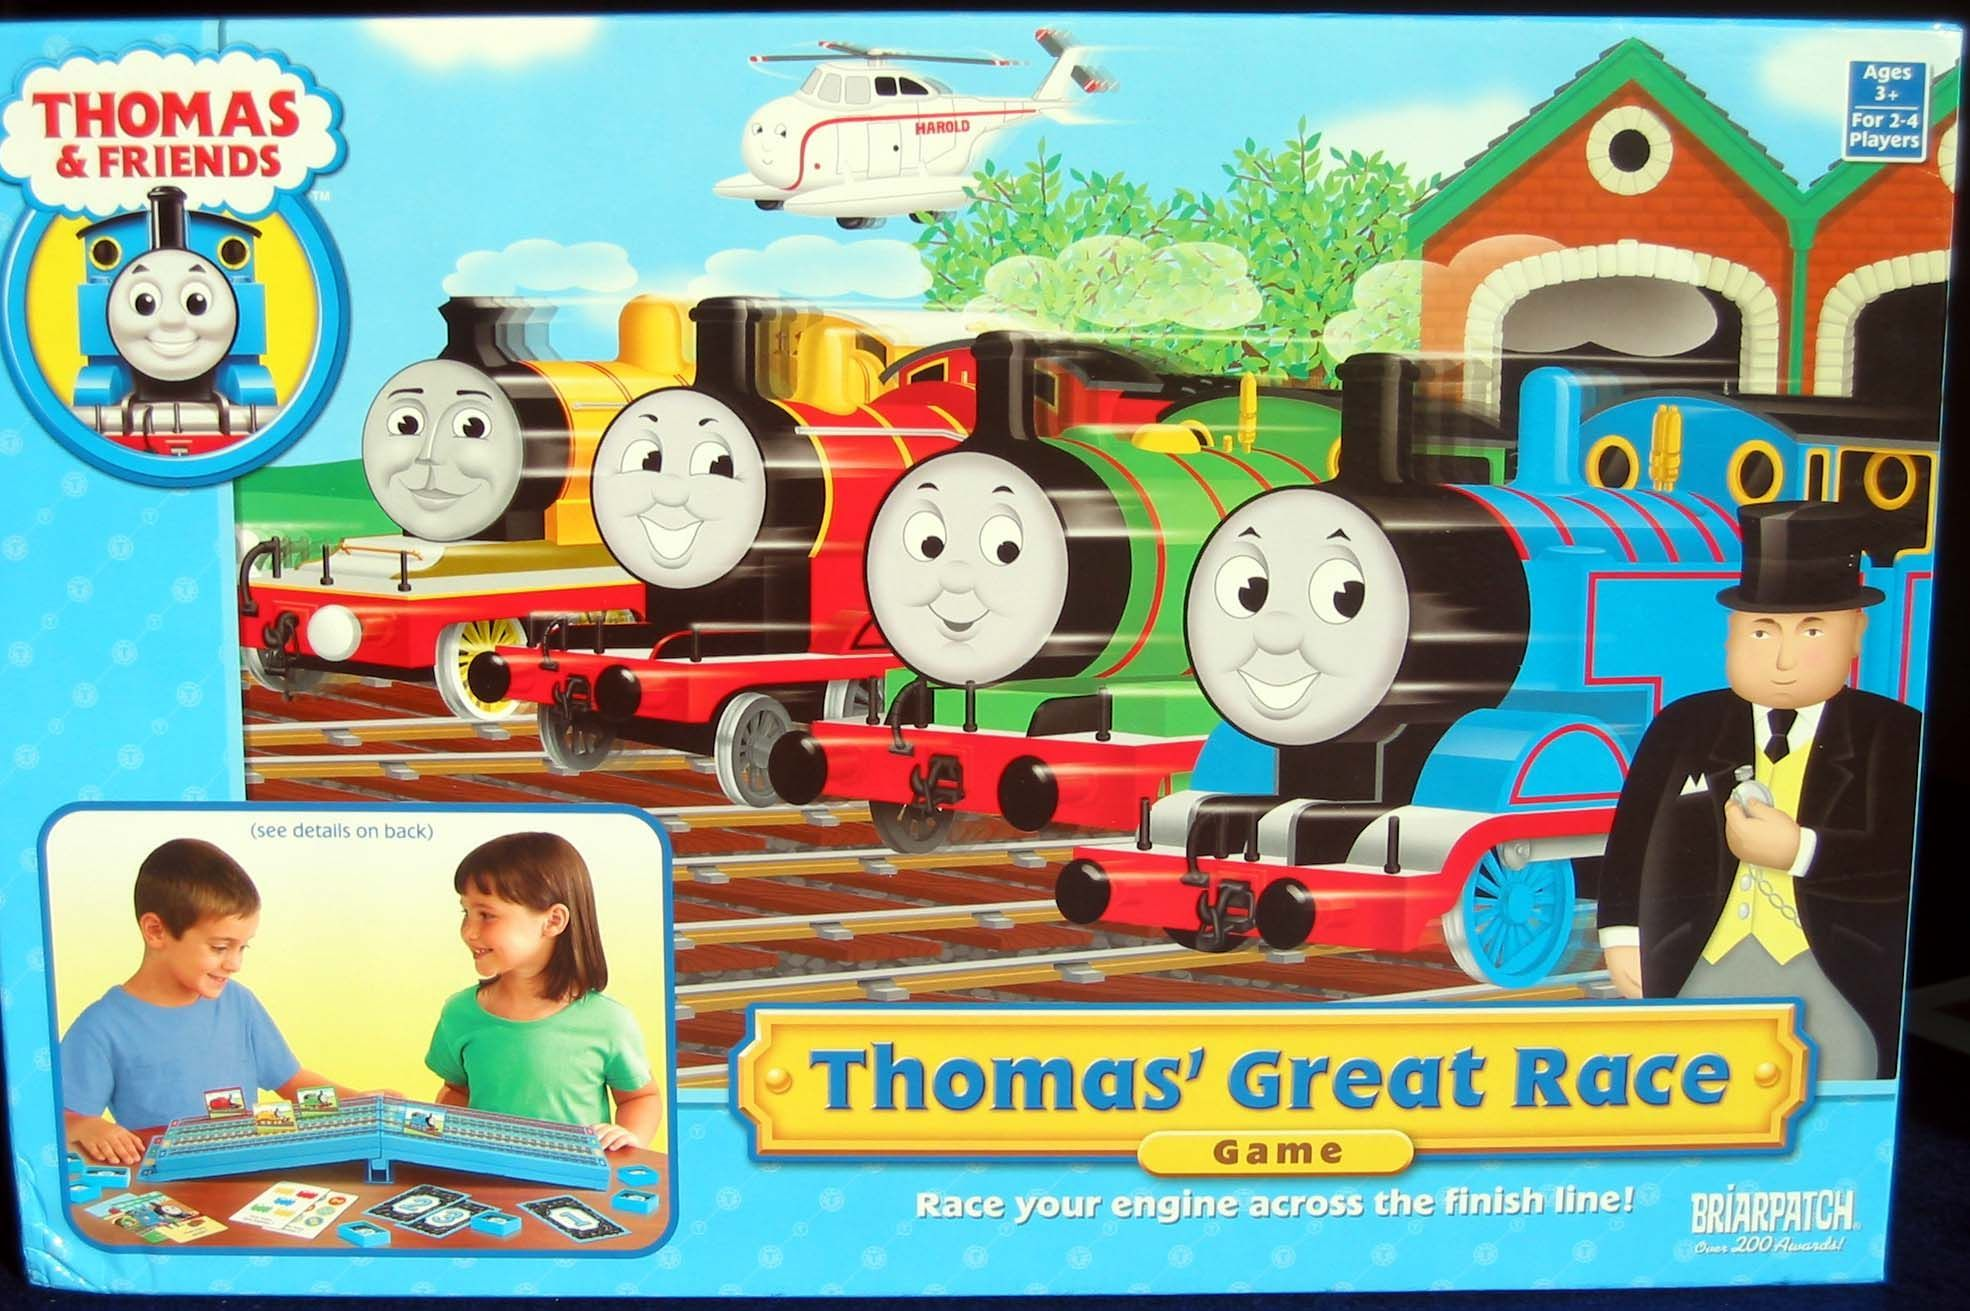 Thomas' Great Race Game